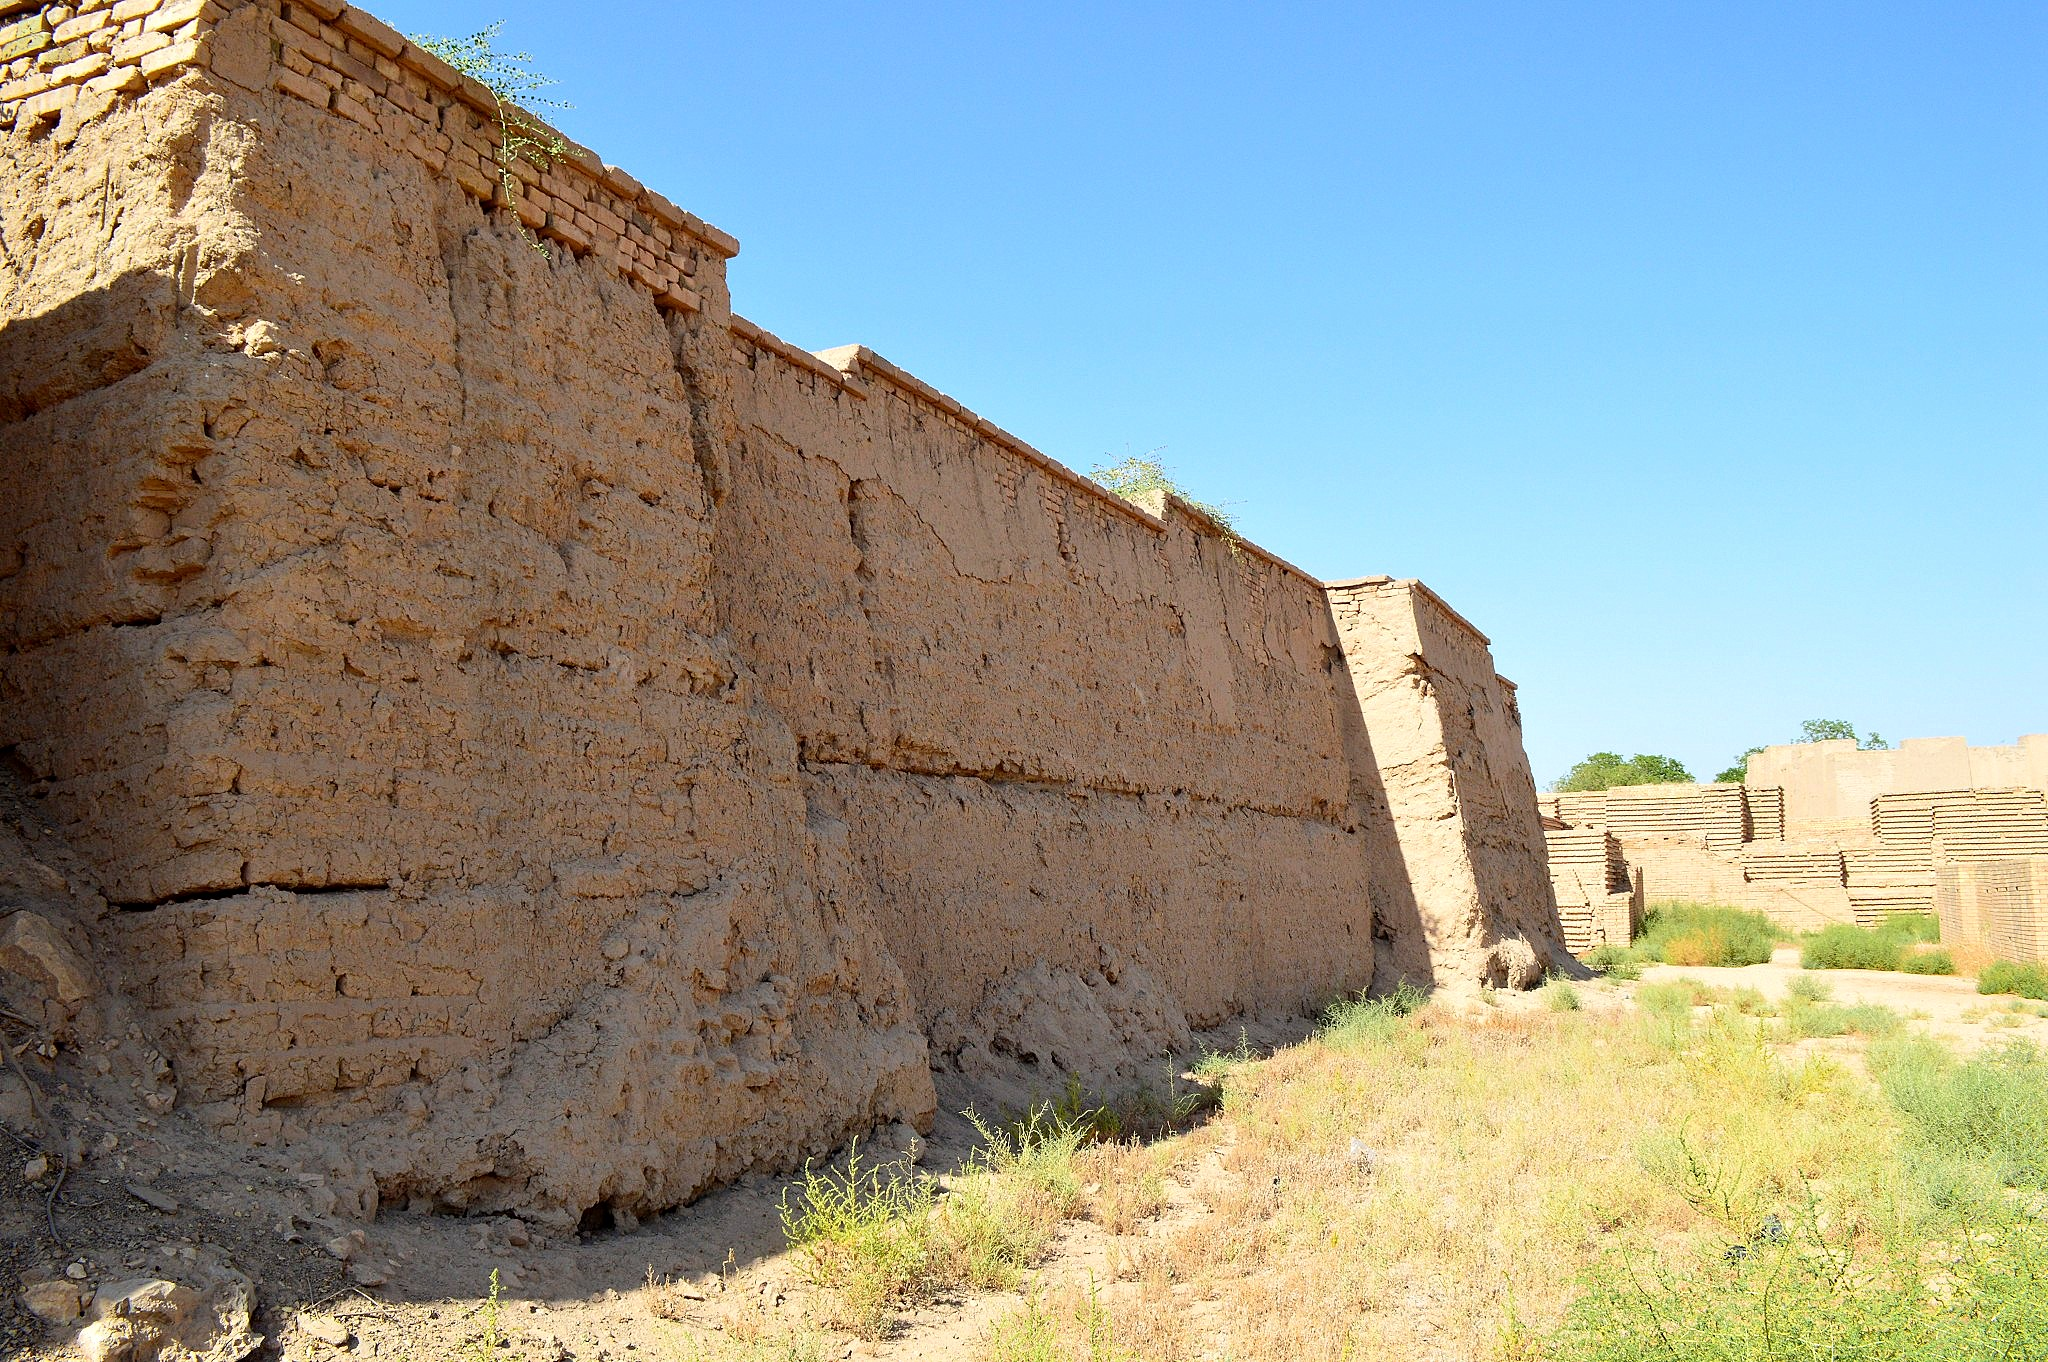 Bb Ii File:the Inner Walls Of The Ancient City Of Babylon, Iraq